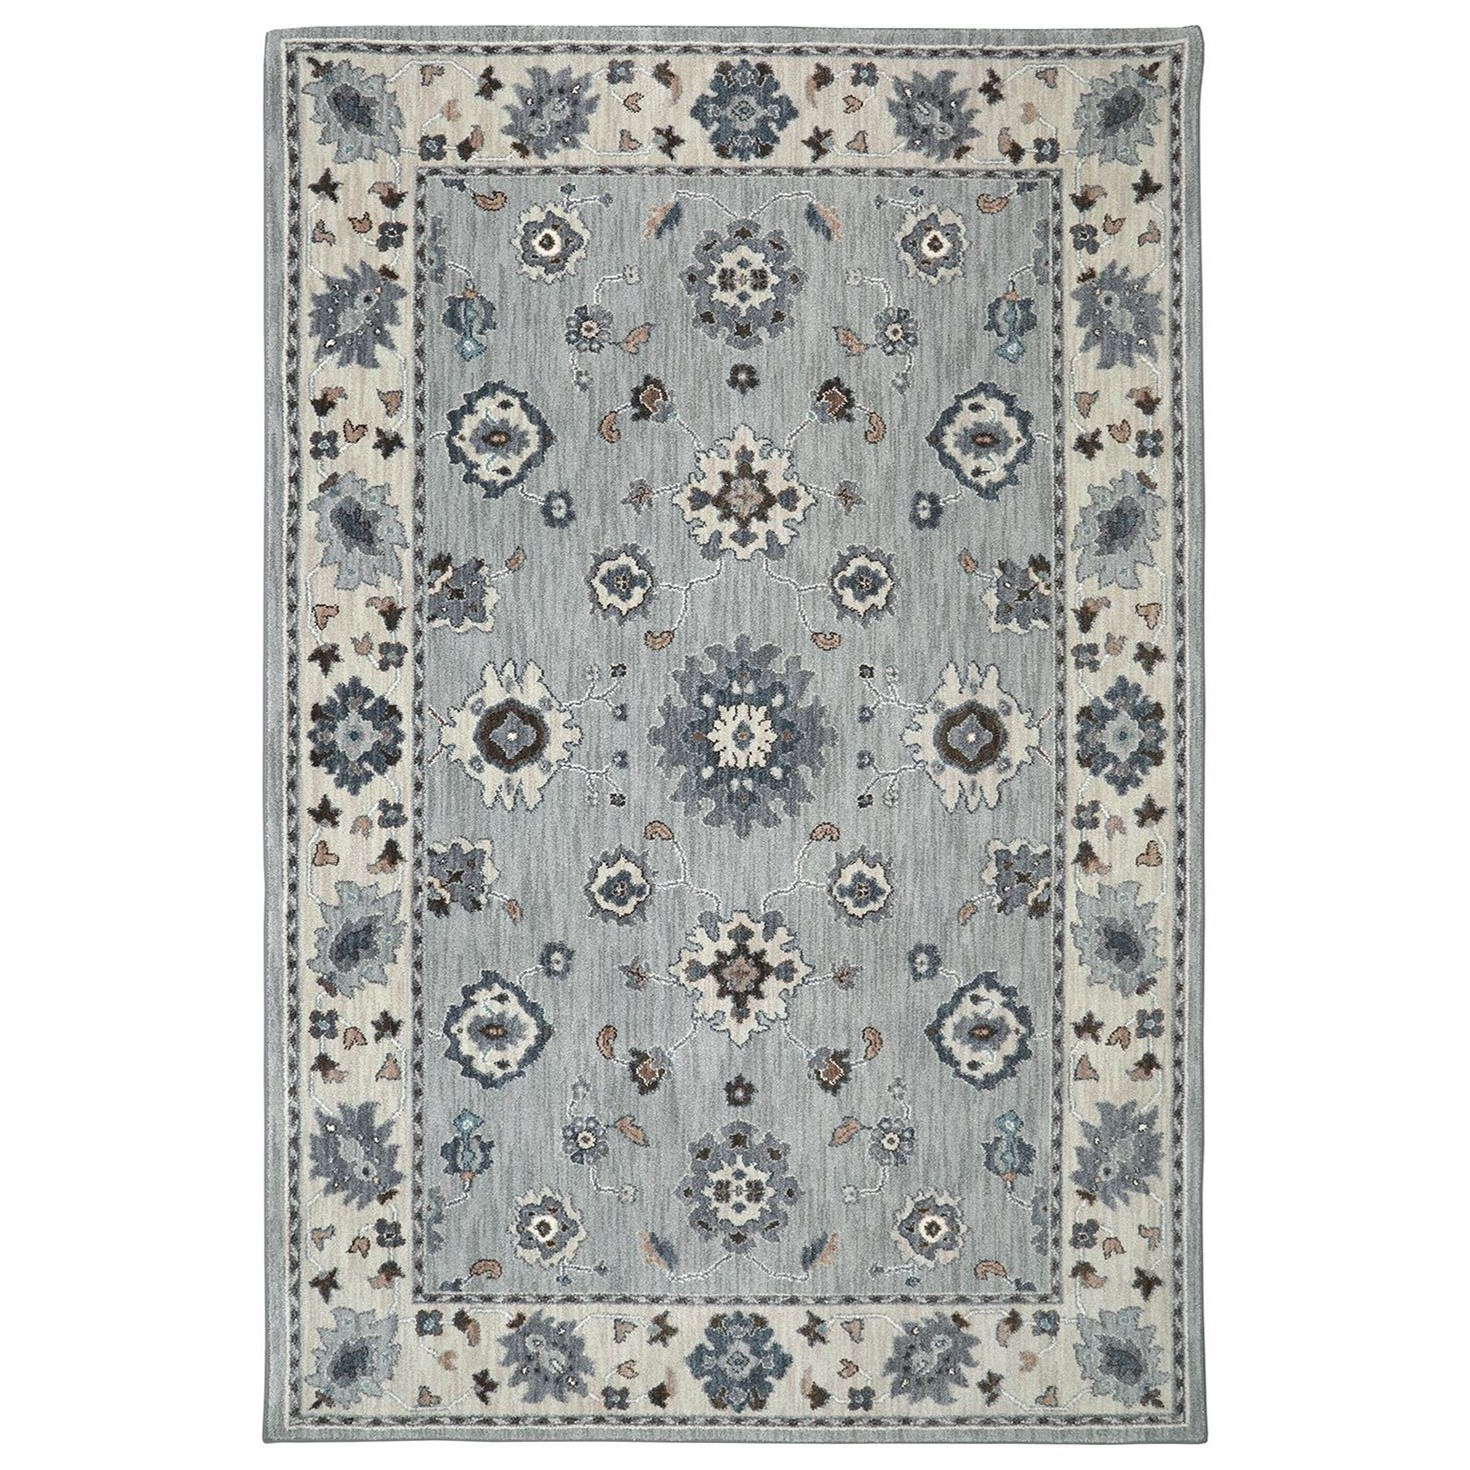 Karastan Rugs Euphoria 3'6x5'6 Kirkwall Willow Grey Rug - Item Number: 90644 90075 042066